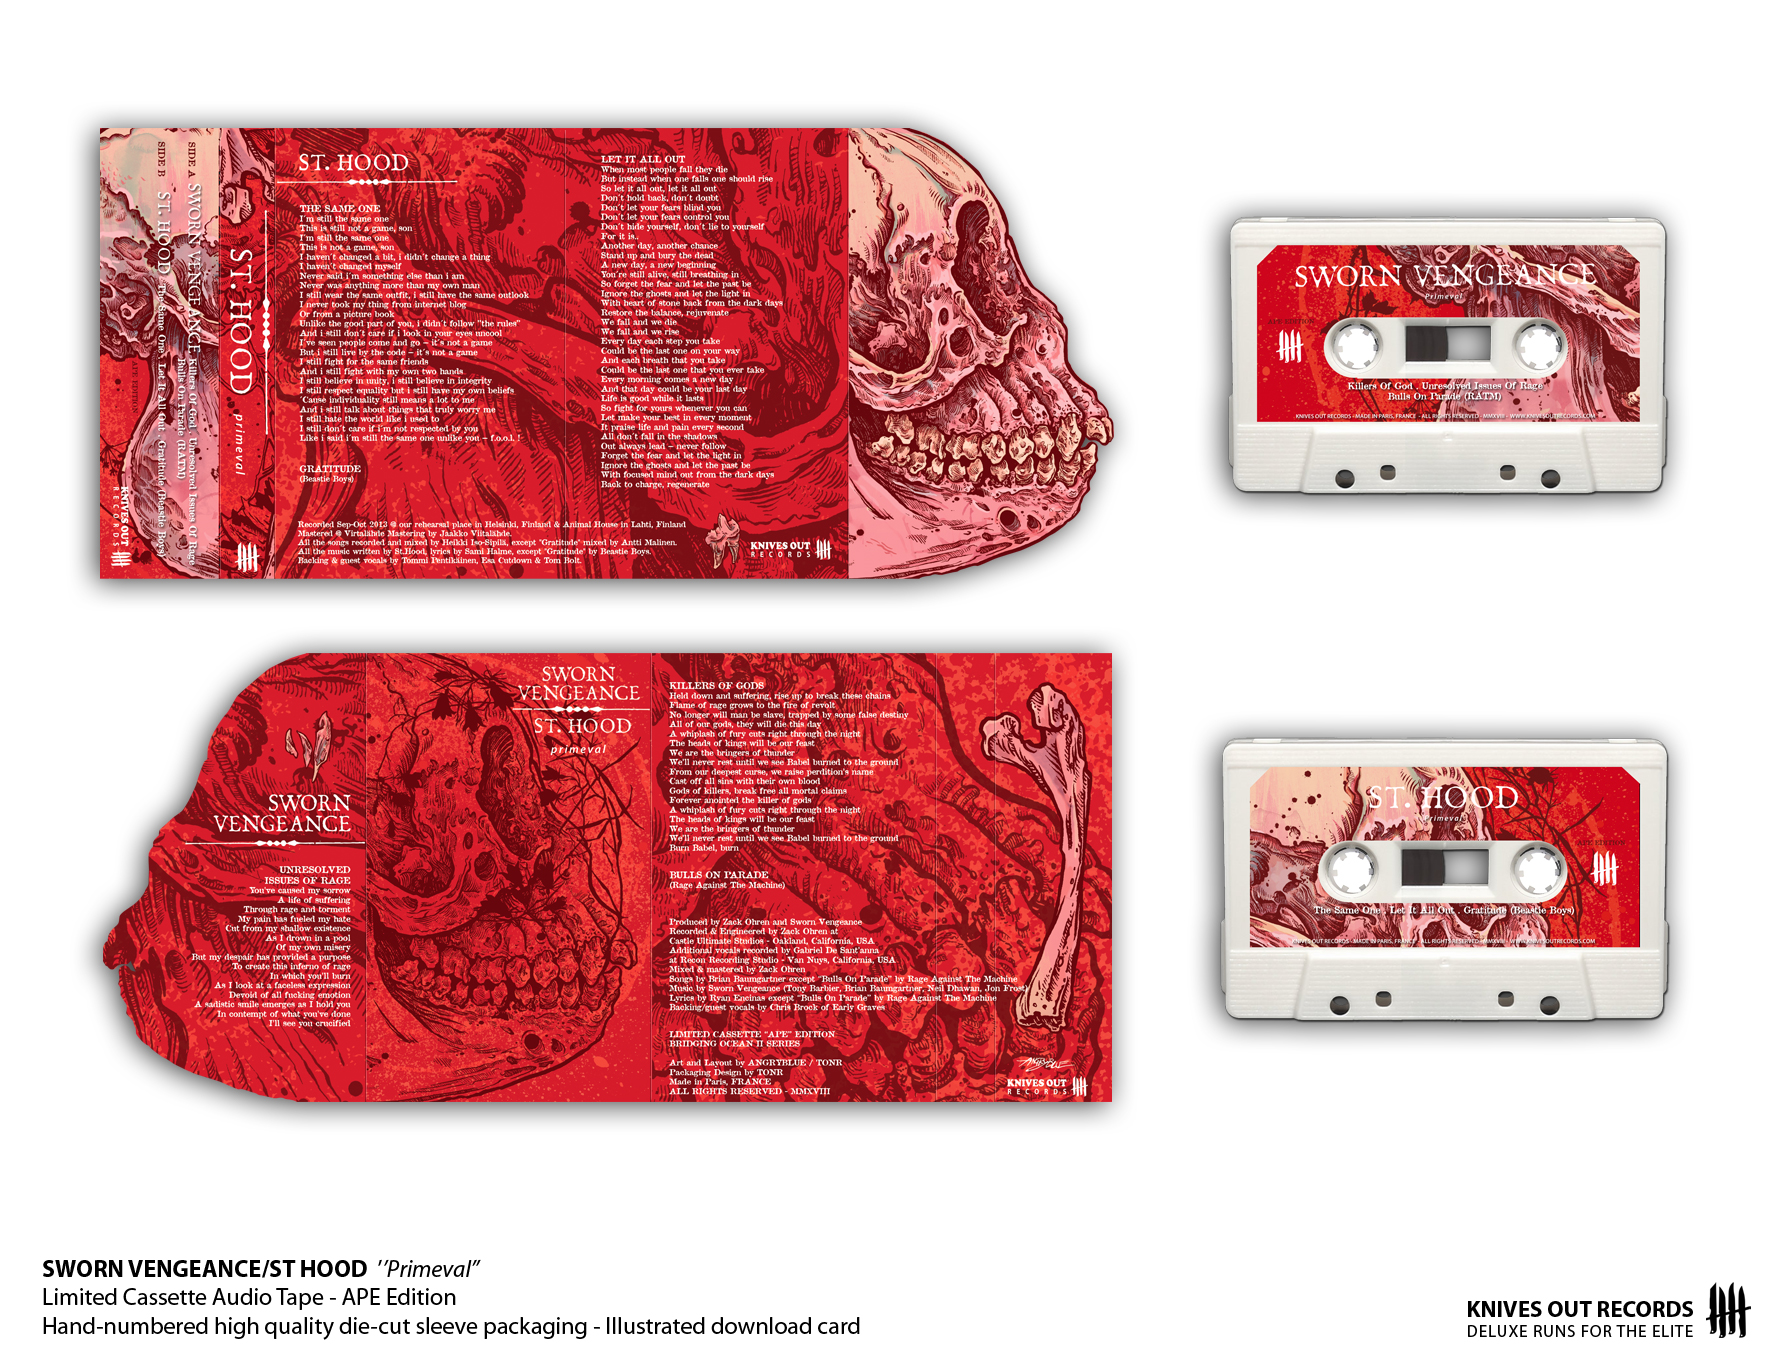 SWORN VENGEANCE/ST HOOD Primeval Cassette Audio Tape - APE Edition